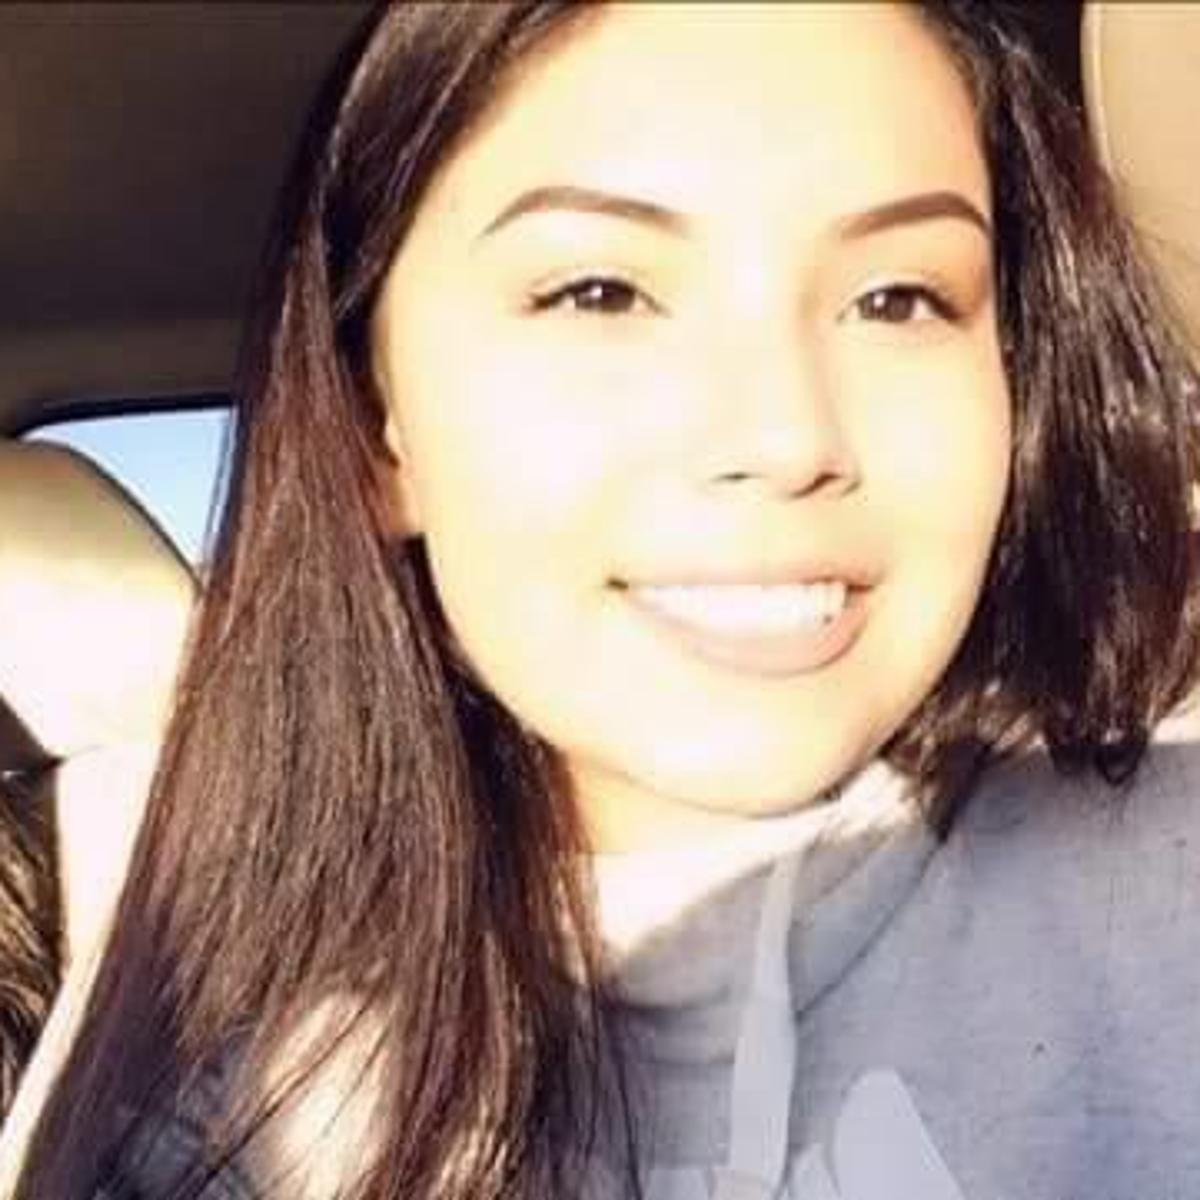 Girl, 15, reported missing from Polson | State and Regional